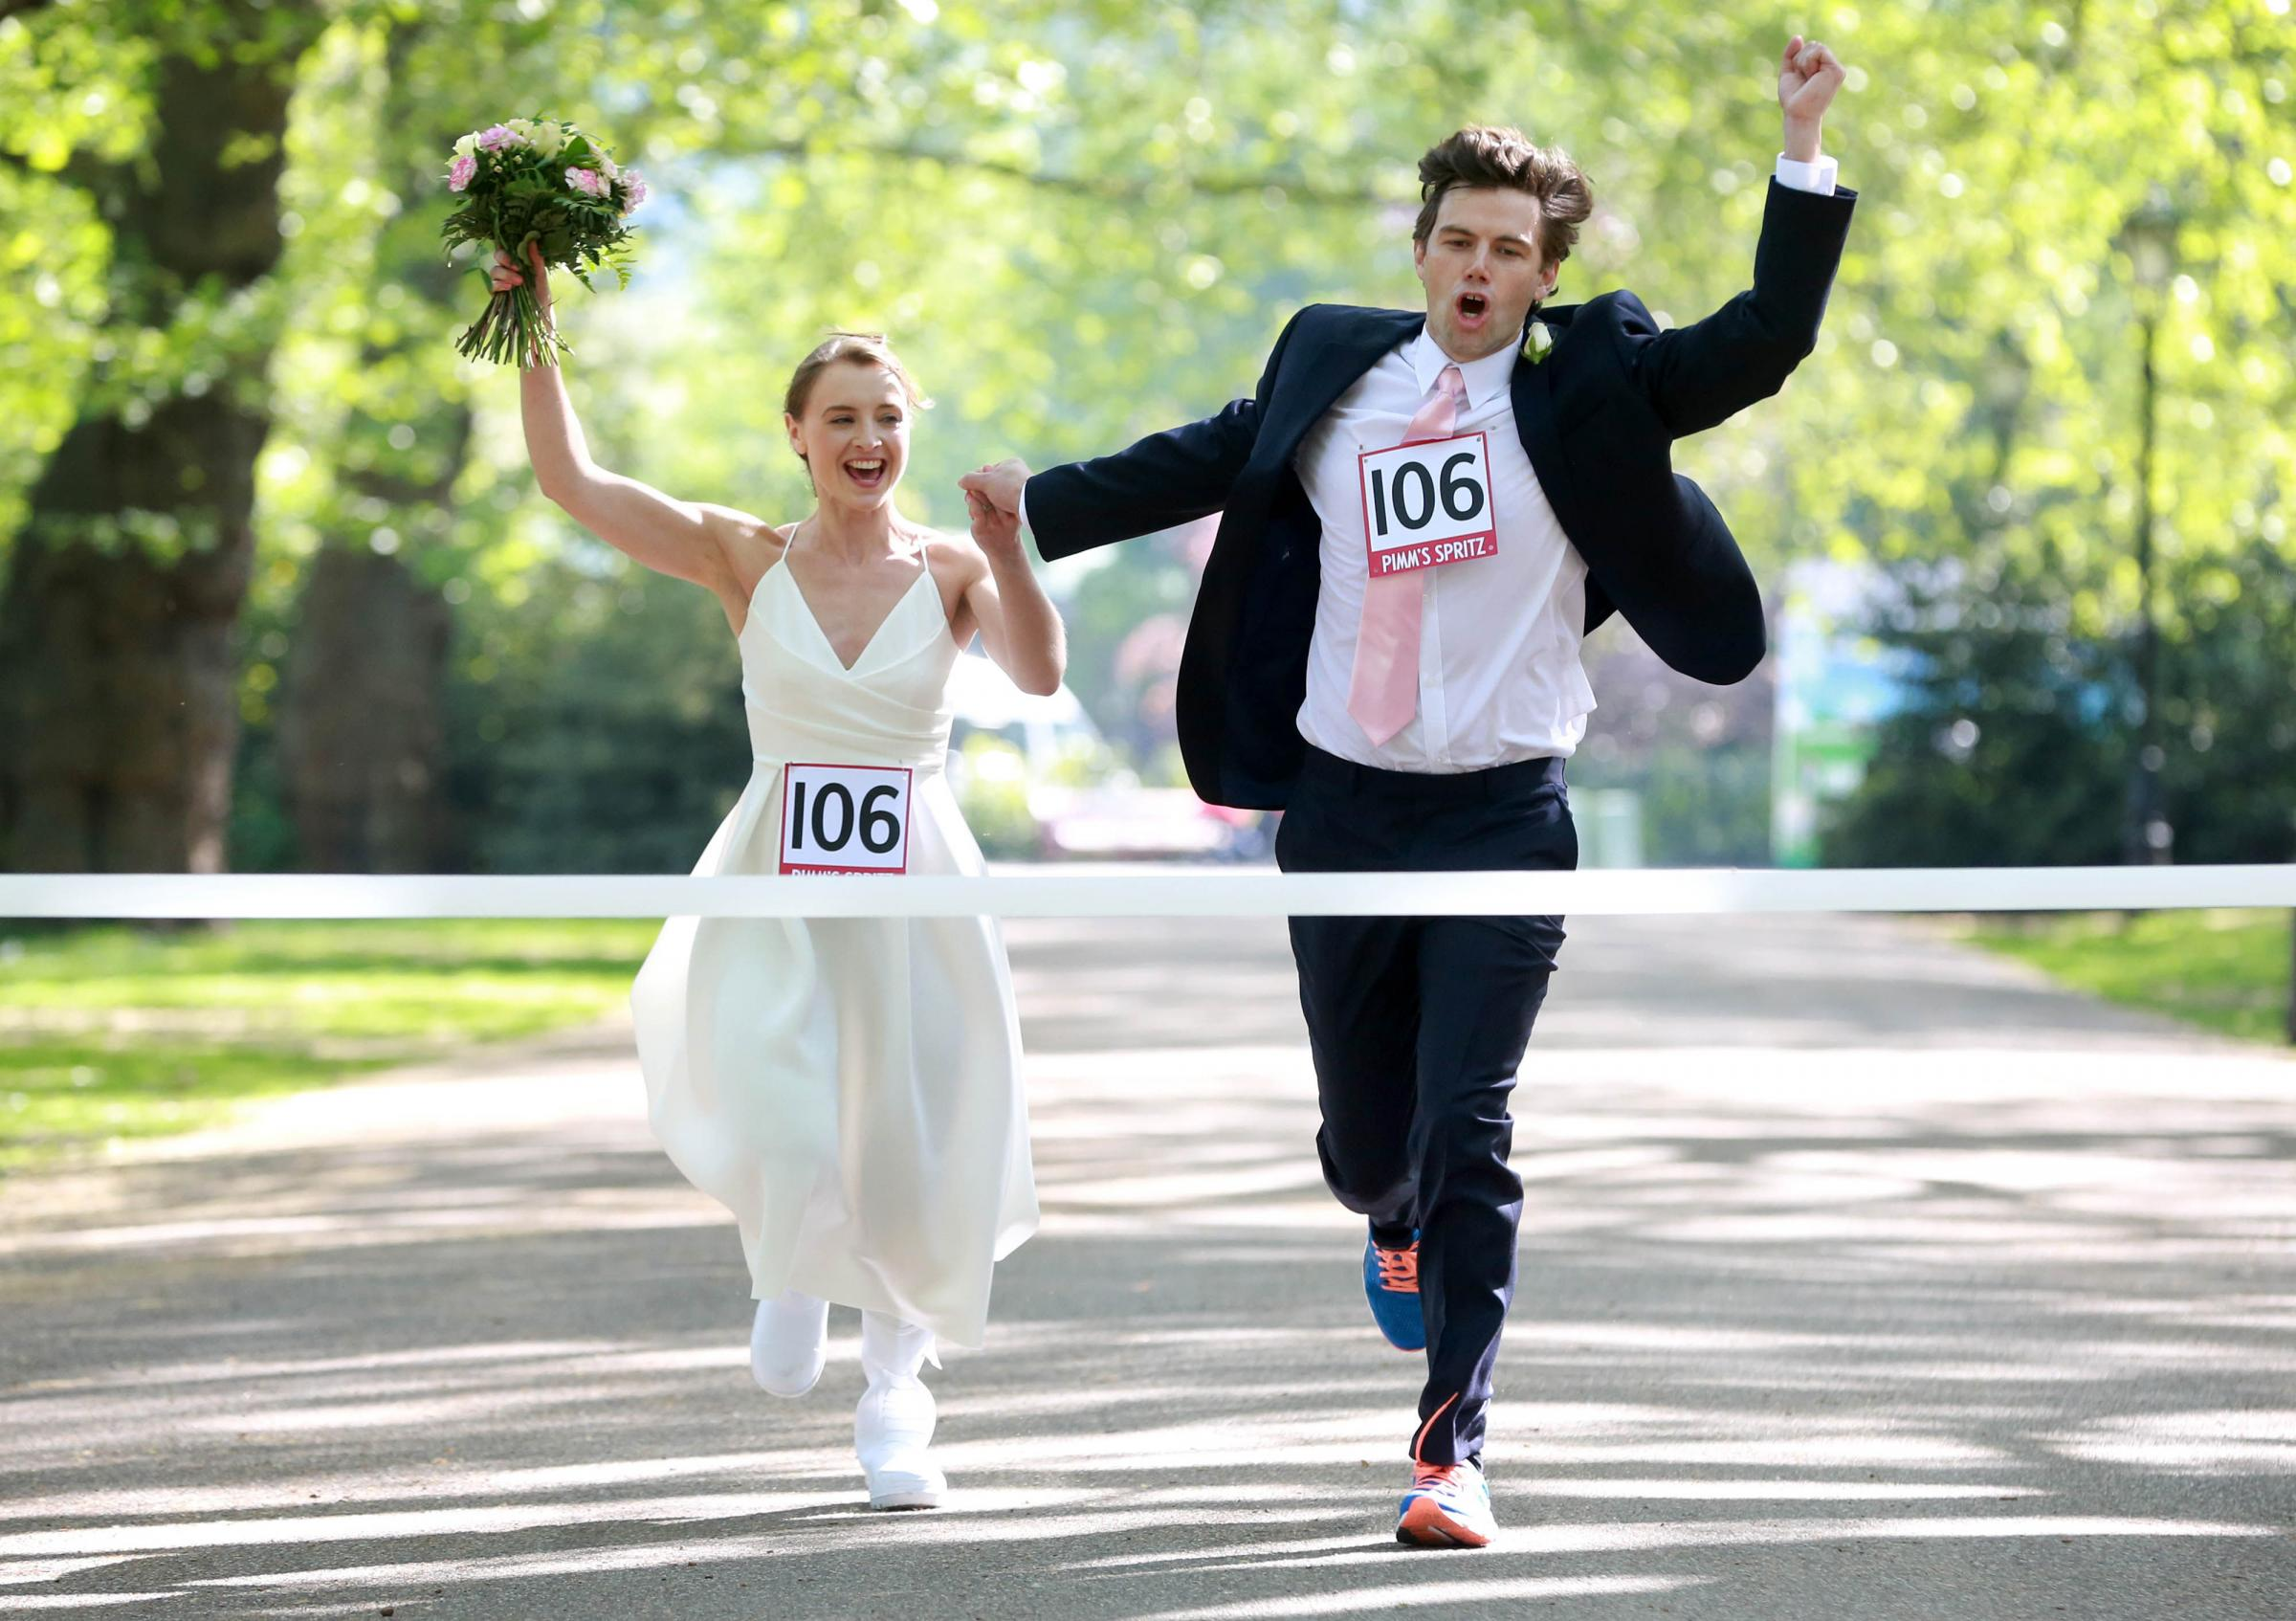 Bride-to-be Jade Woolett and her groom Daniel Carey from Wimbledon celebrate as they win the Pimm's Spritz Wedding Dash. Photo. Picture date: Tuesday May 8, 2018. The drinks brand is hosting the competition to launch their new Spritz cocktail, just in